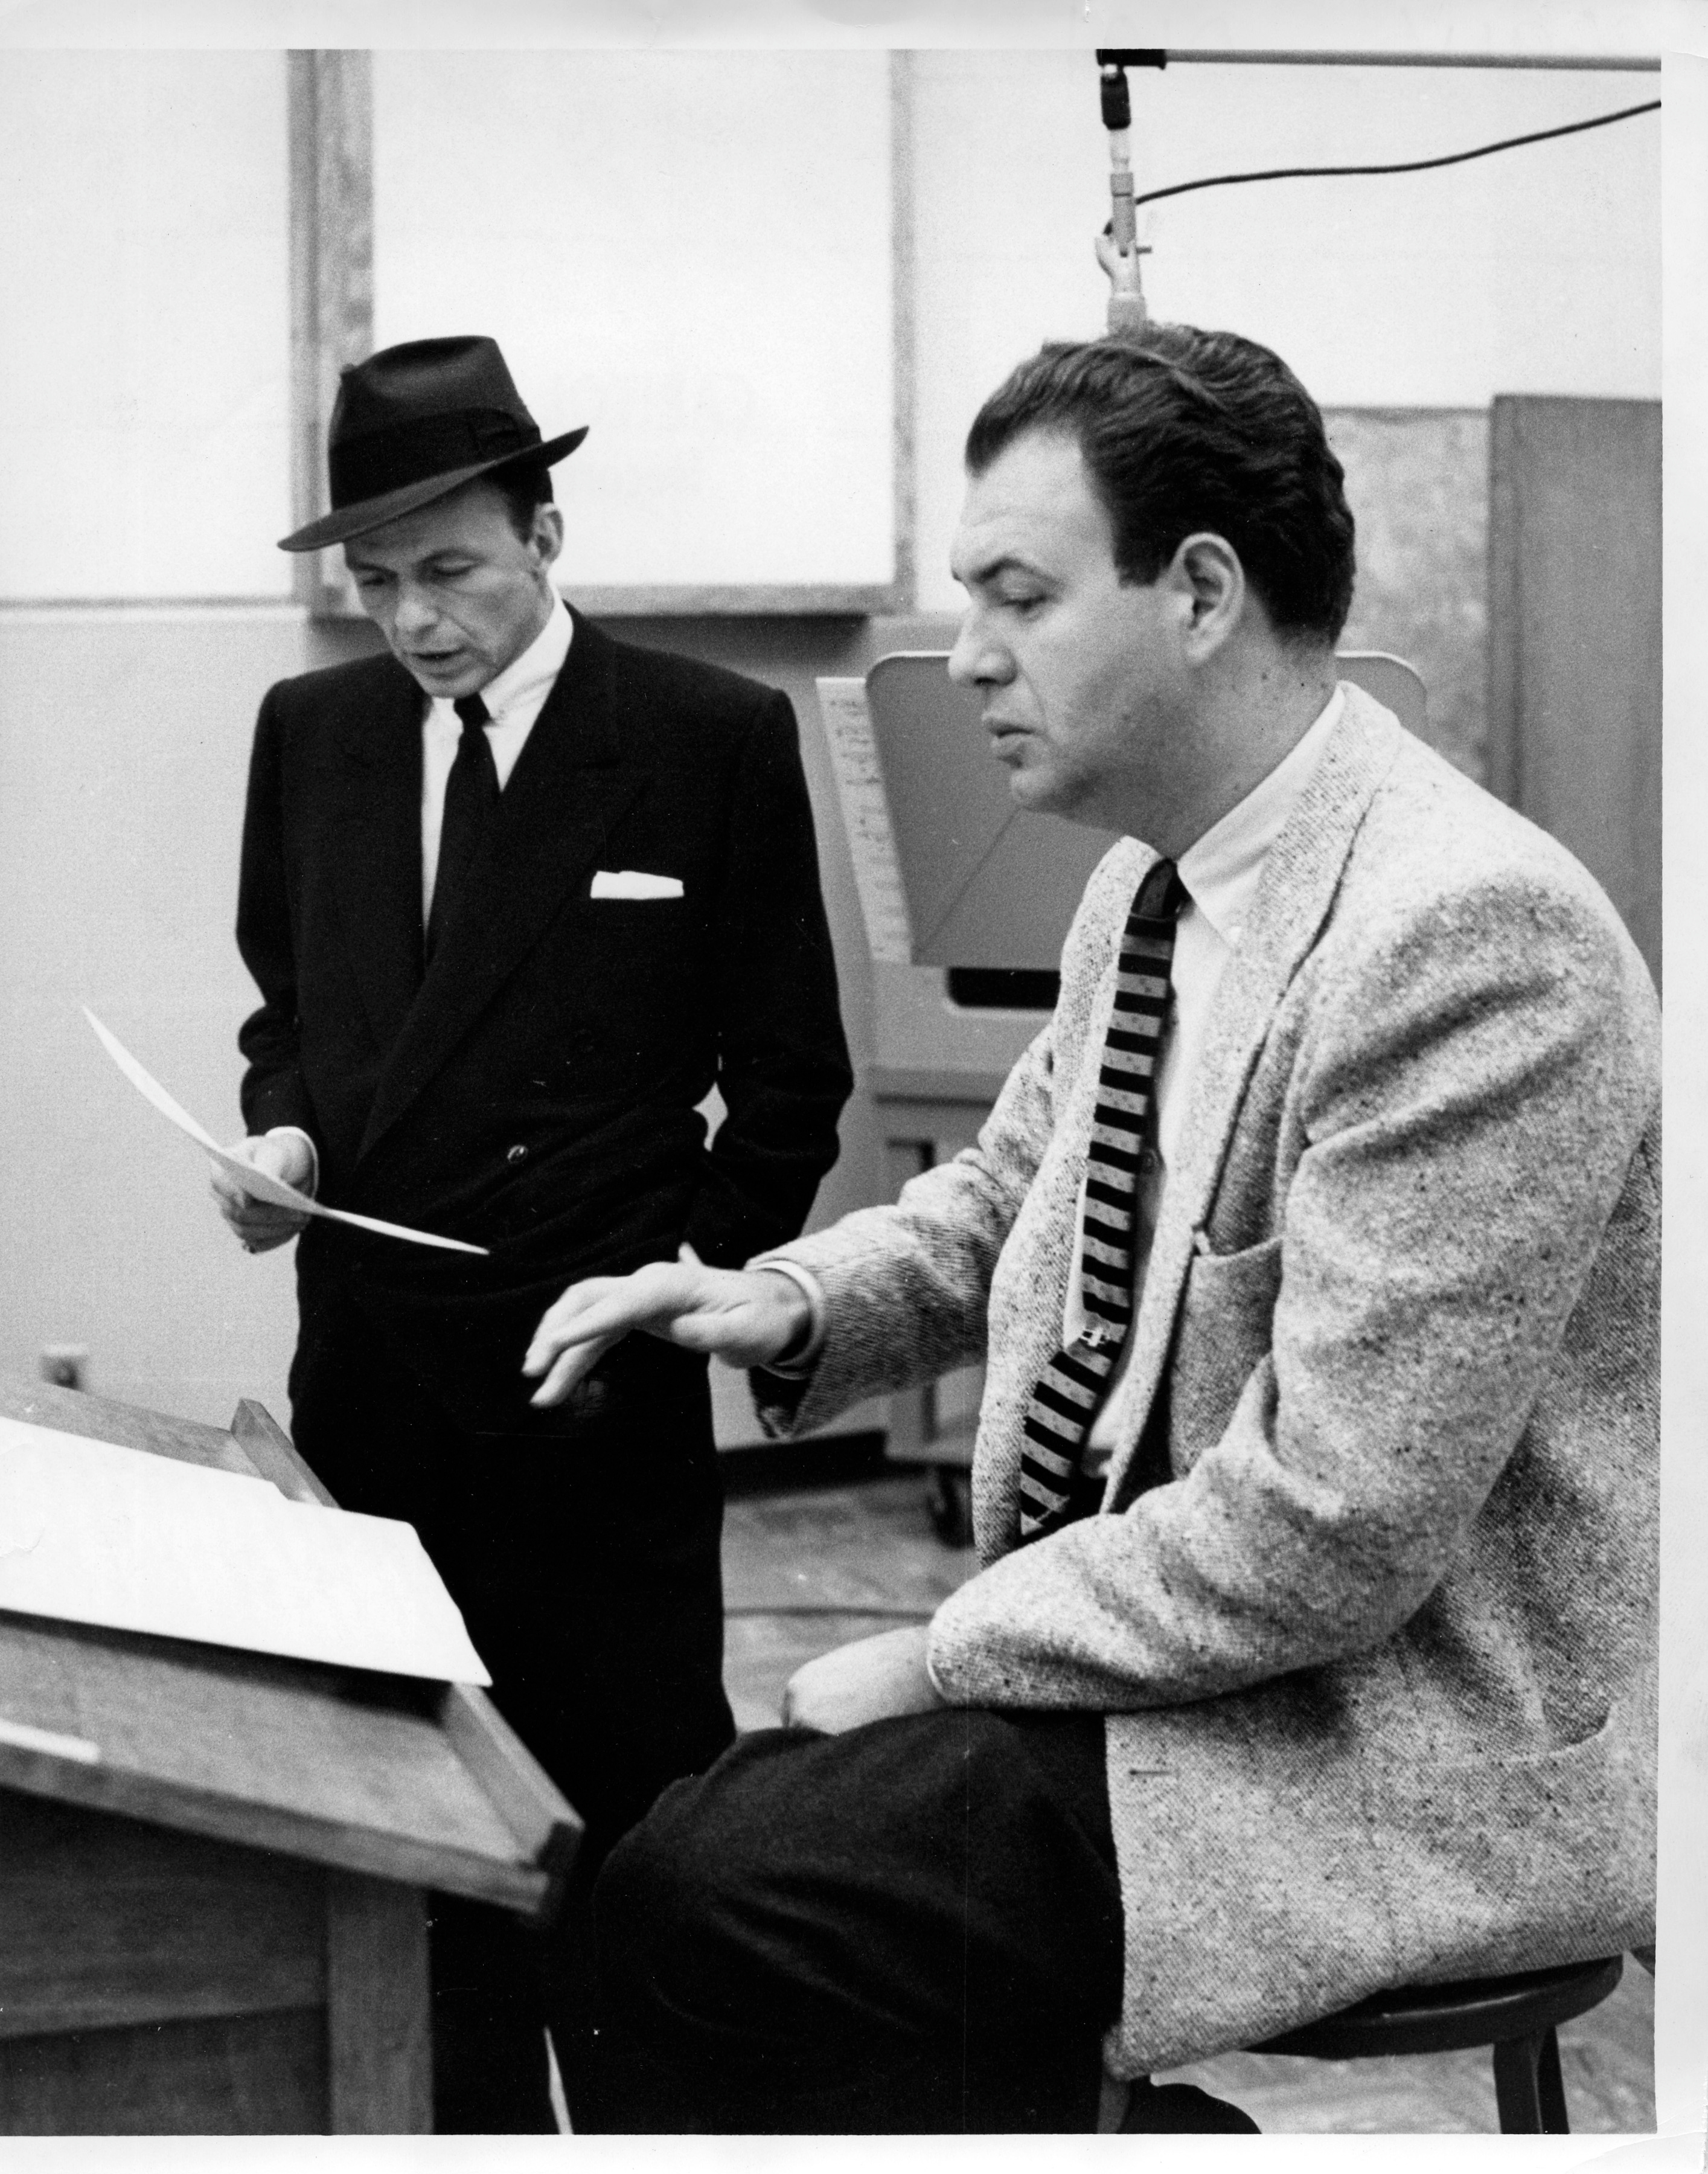 Caption: Sinatra and Riddle, Credit: ABC Photo Archives/Getty